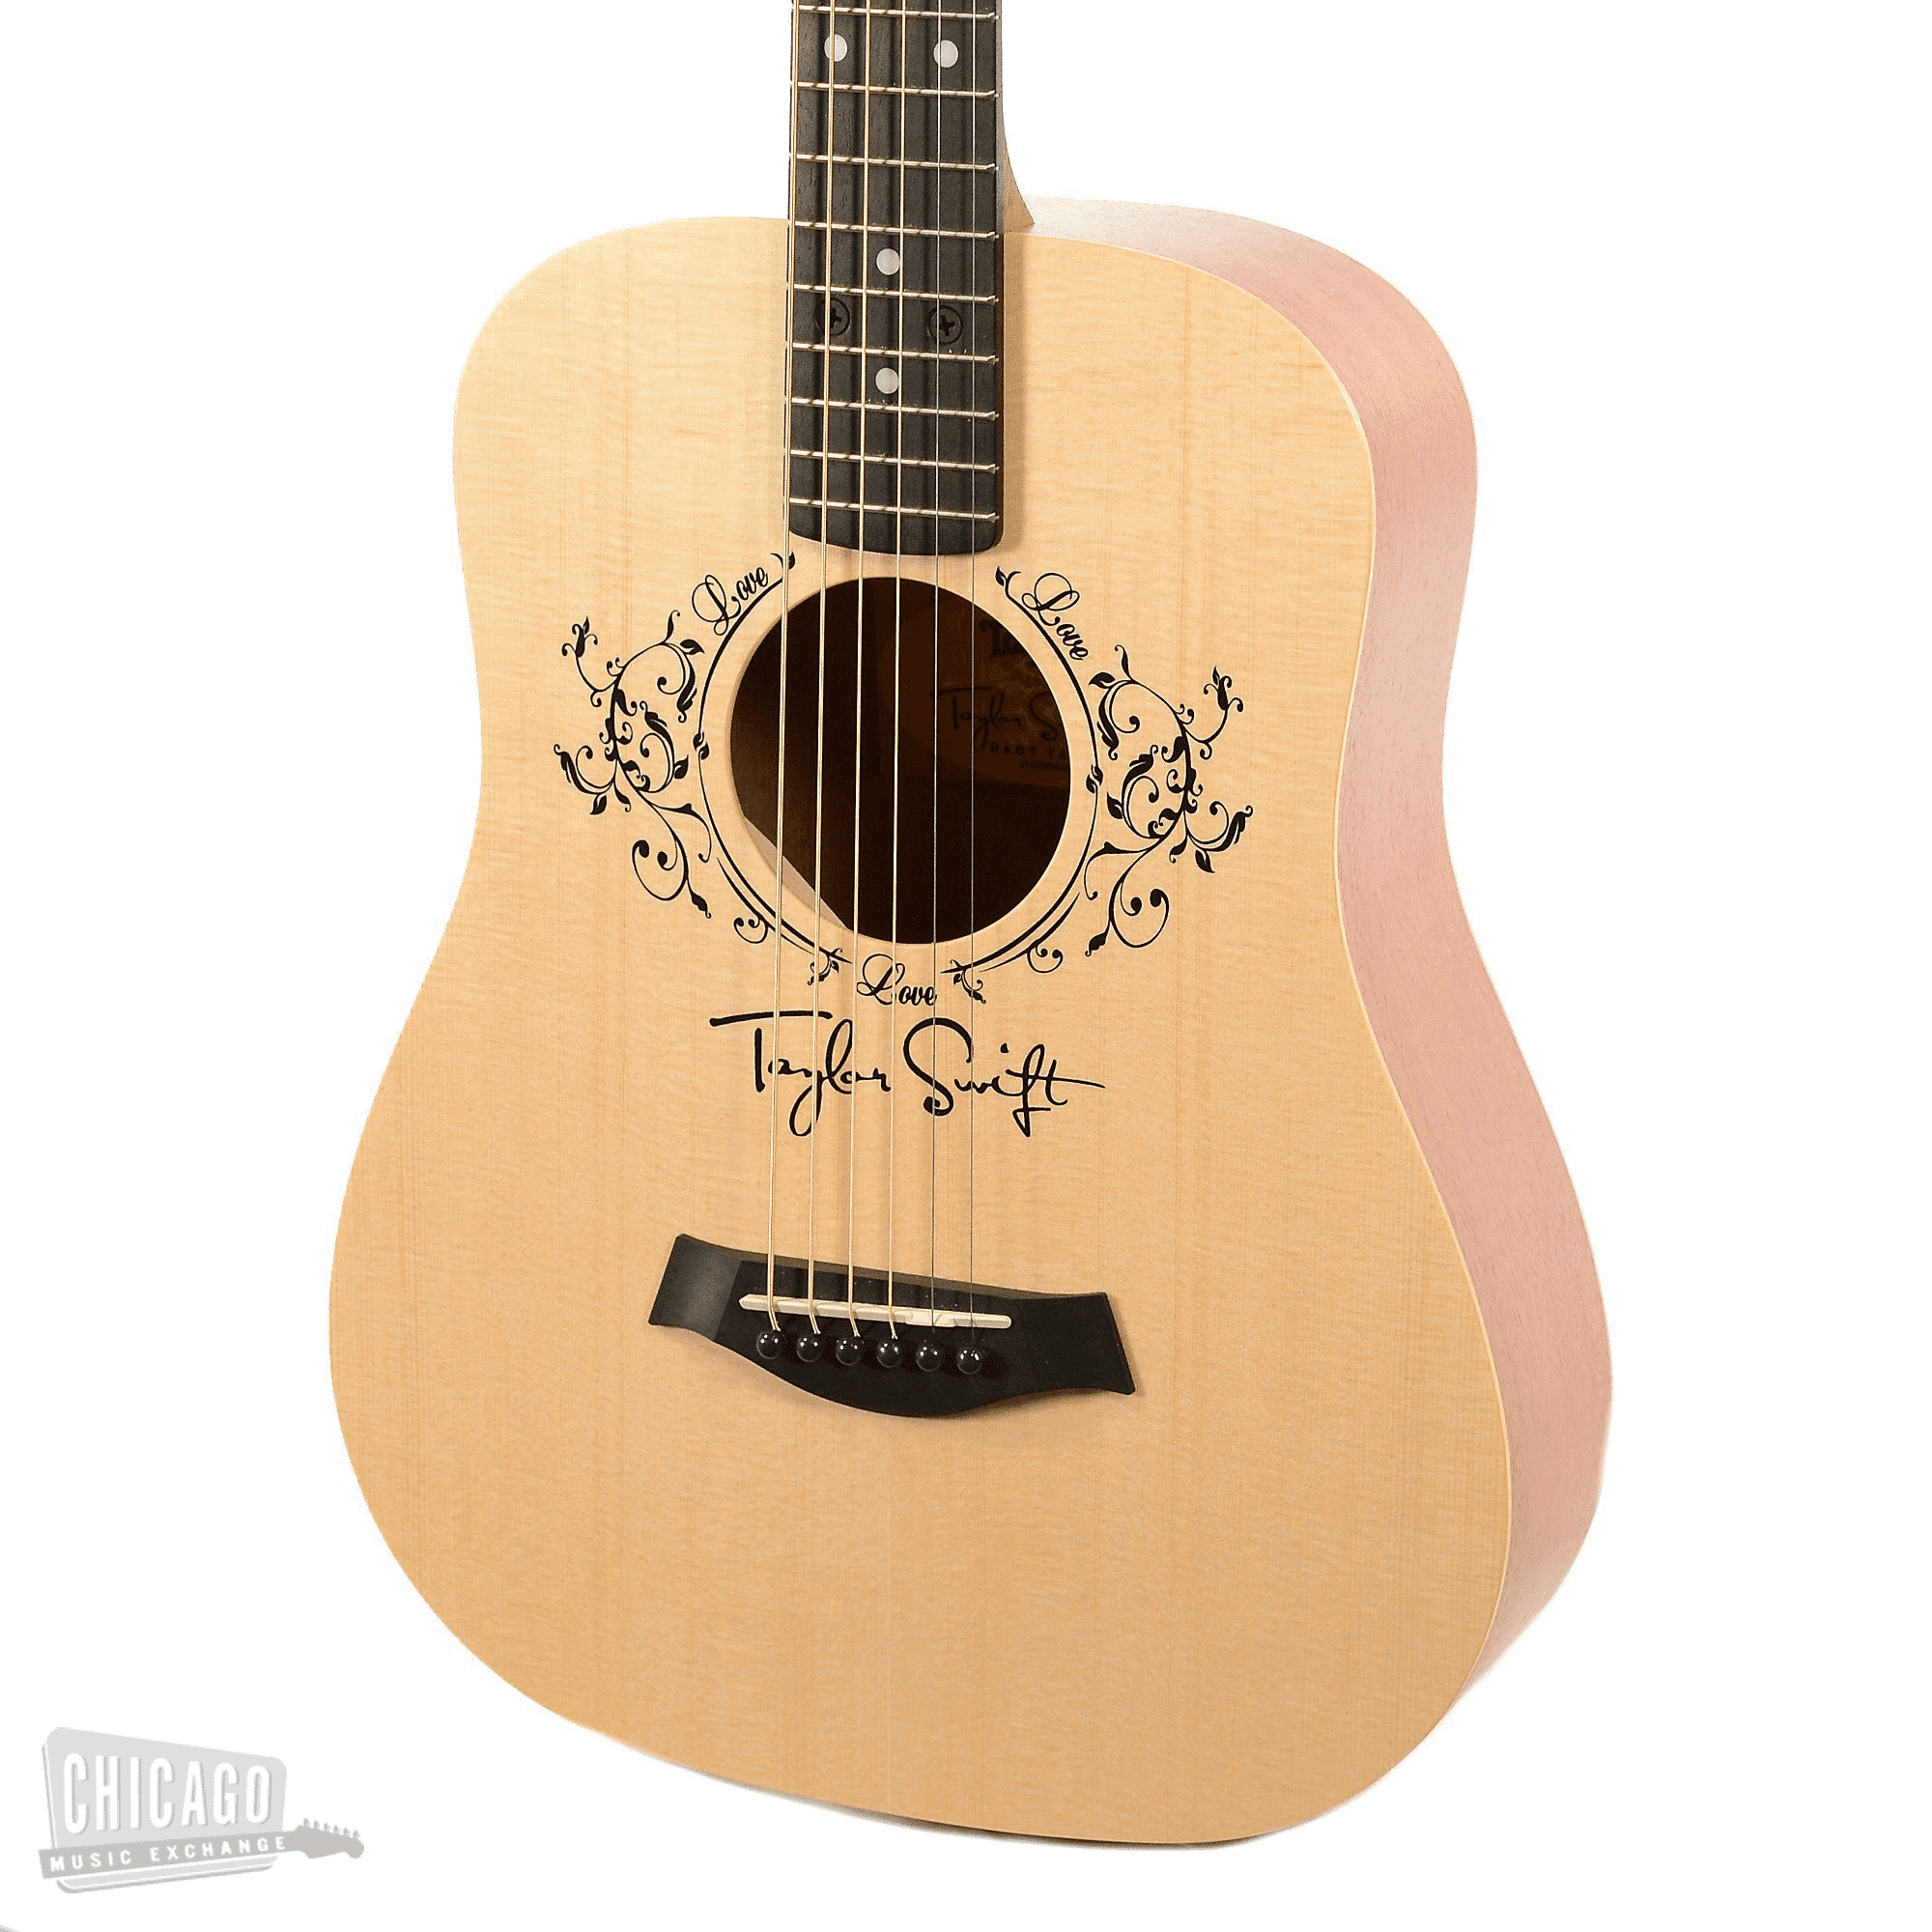 Taylor Swift Signature Guitar Review